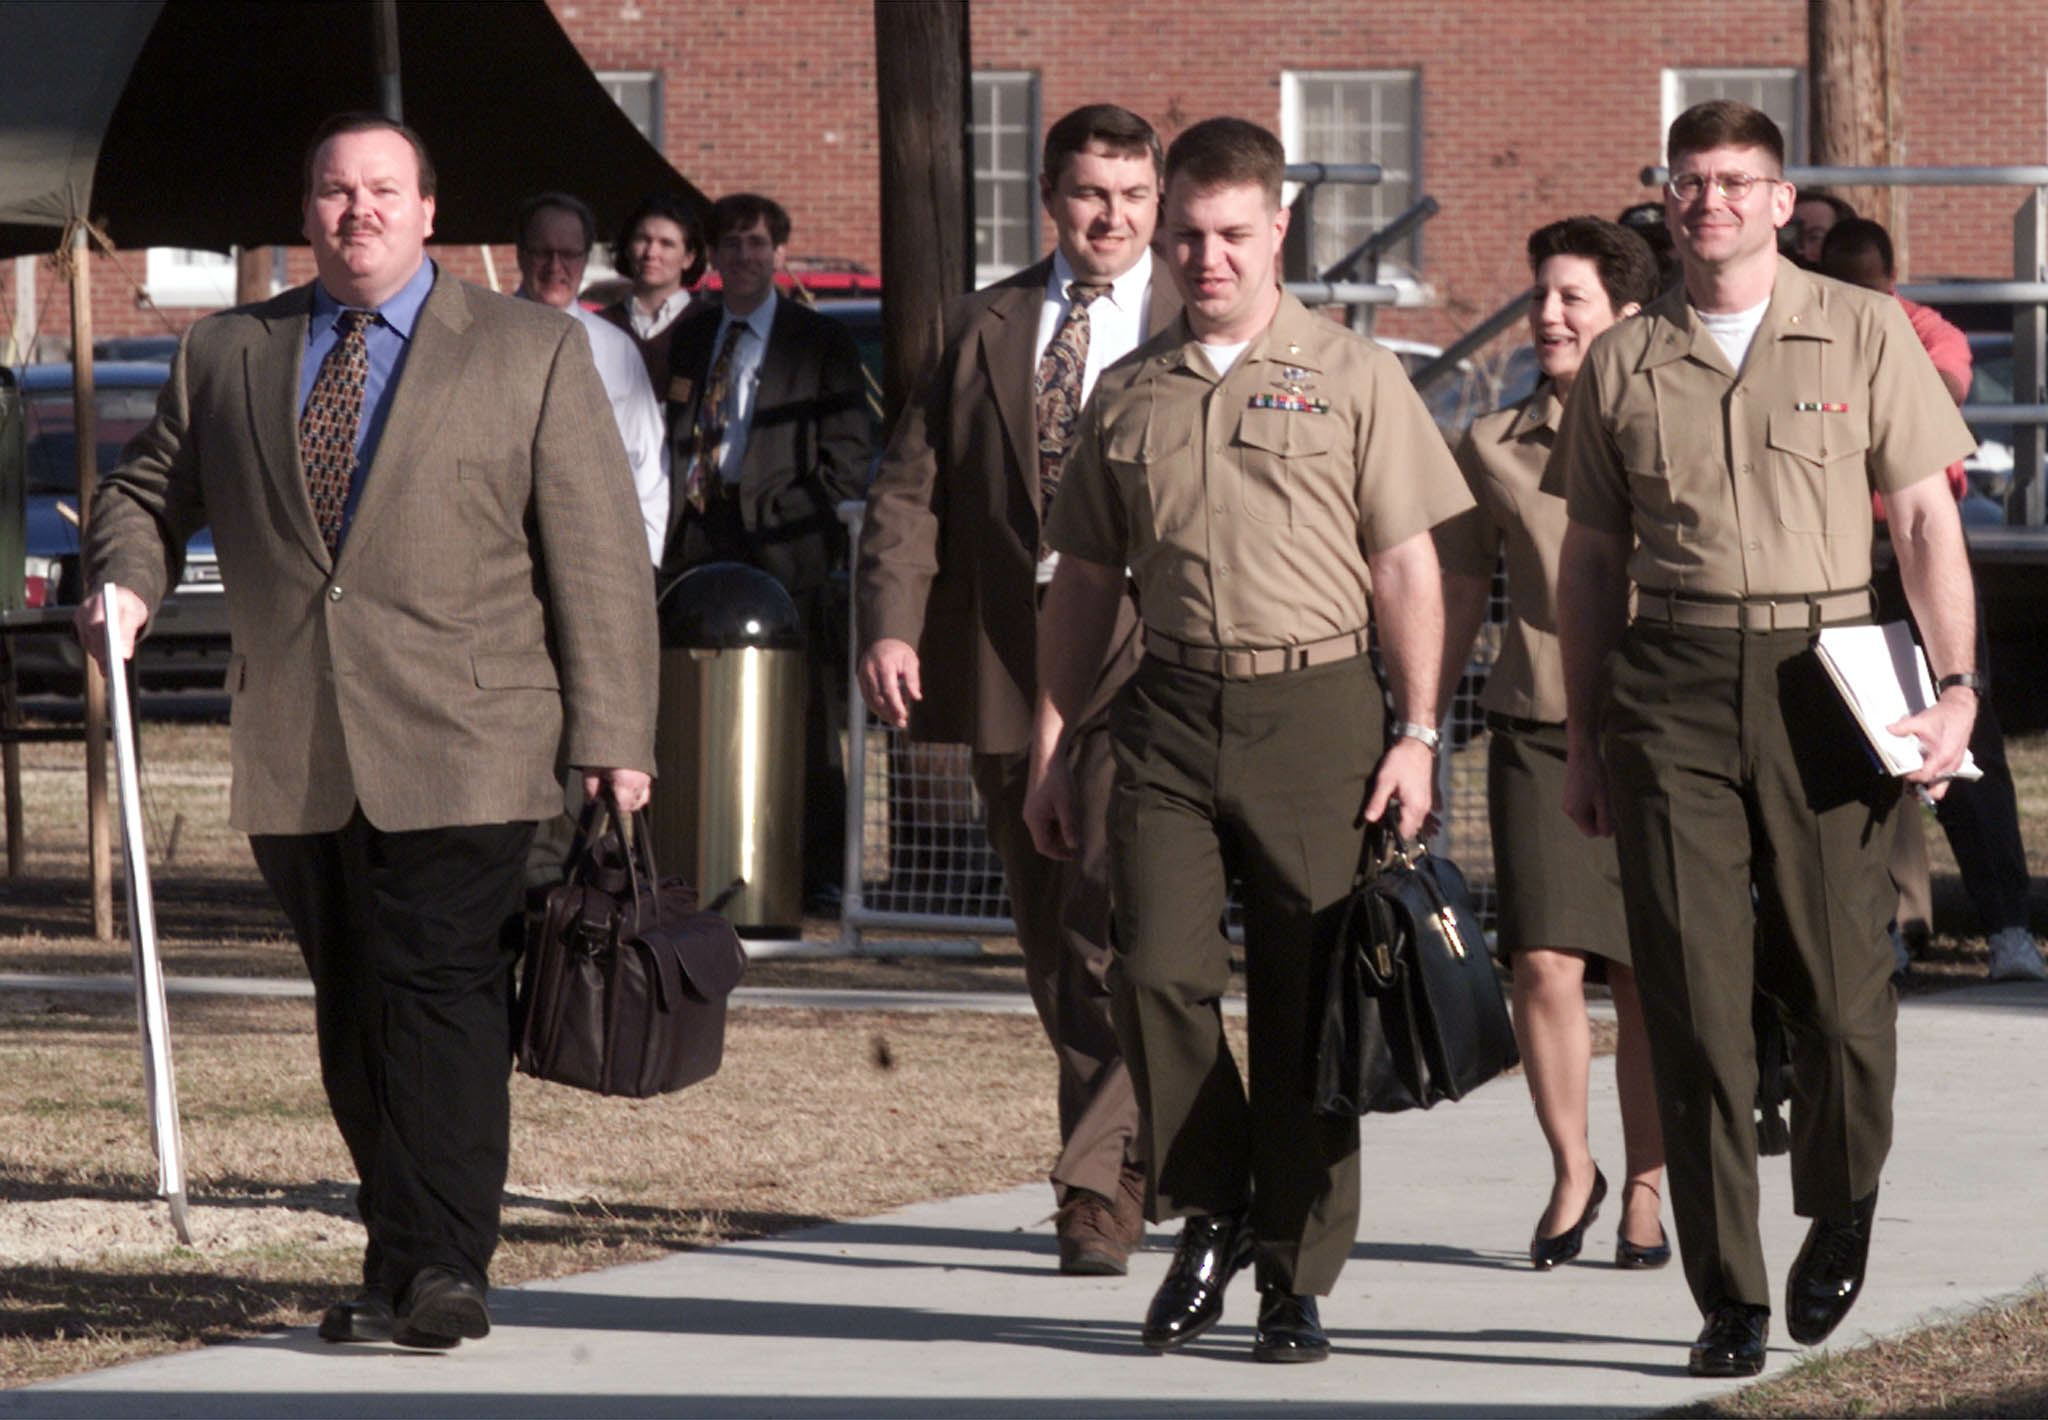 Real-life NCIS agents on their way to the courtroom.